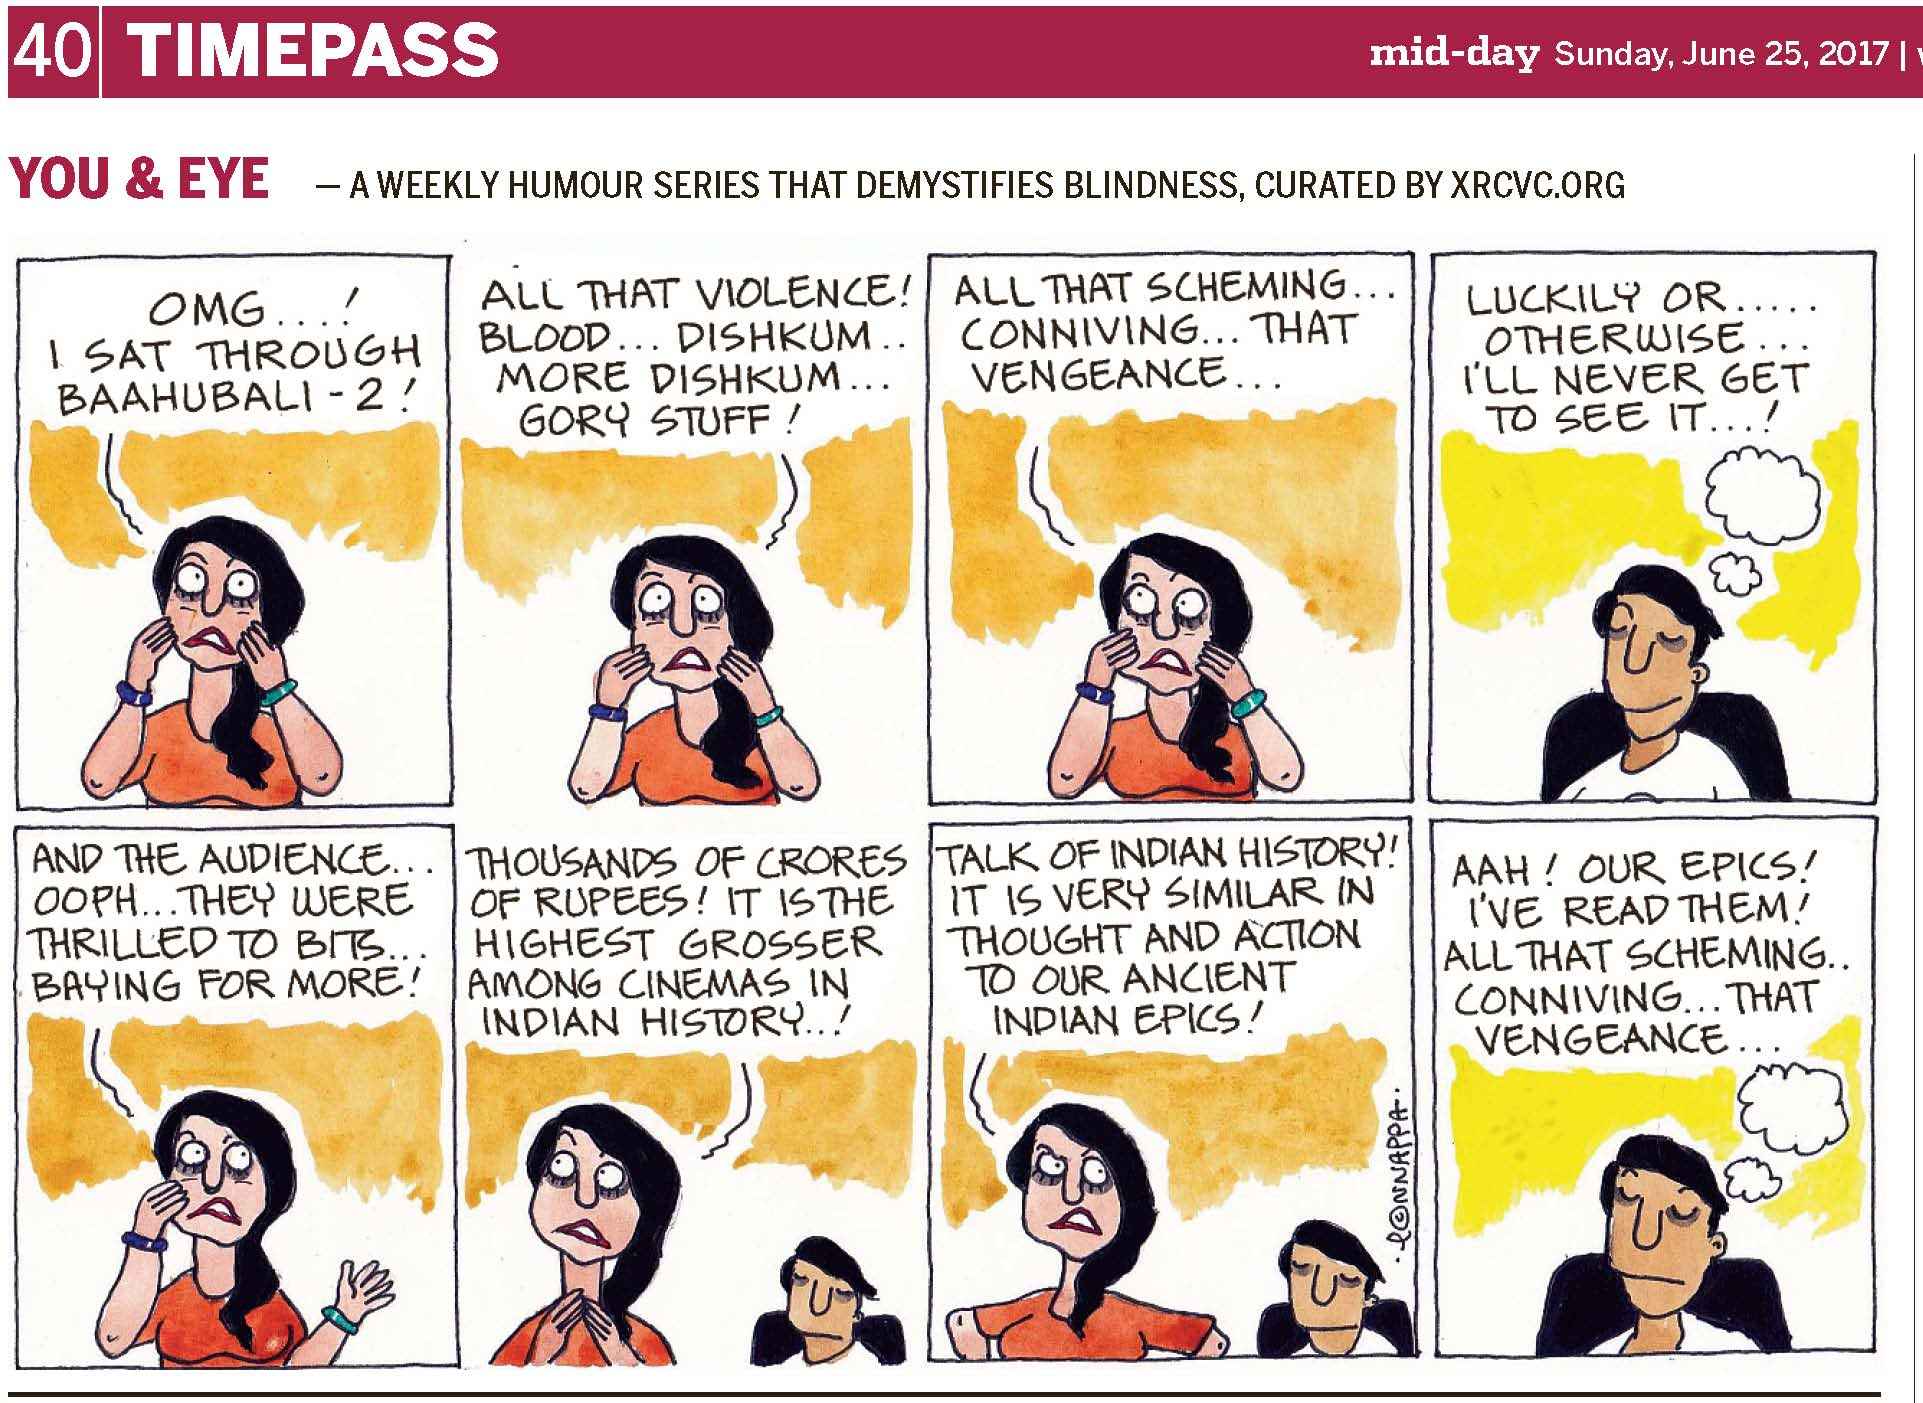 (top-left) 40 | TIMEPASS (top-right) mid-day Sunday, June 25, 2017 